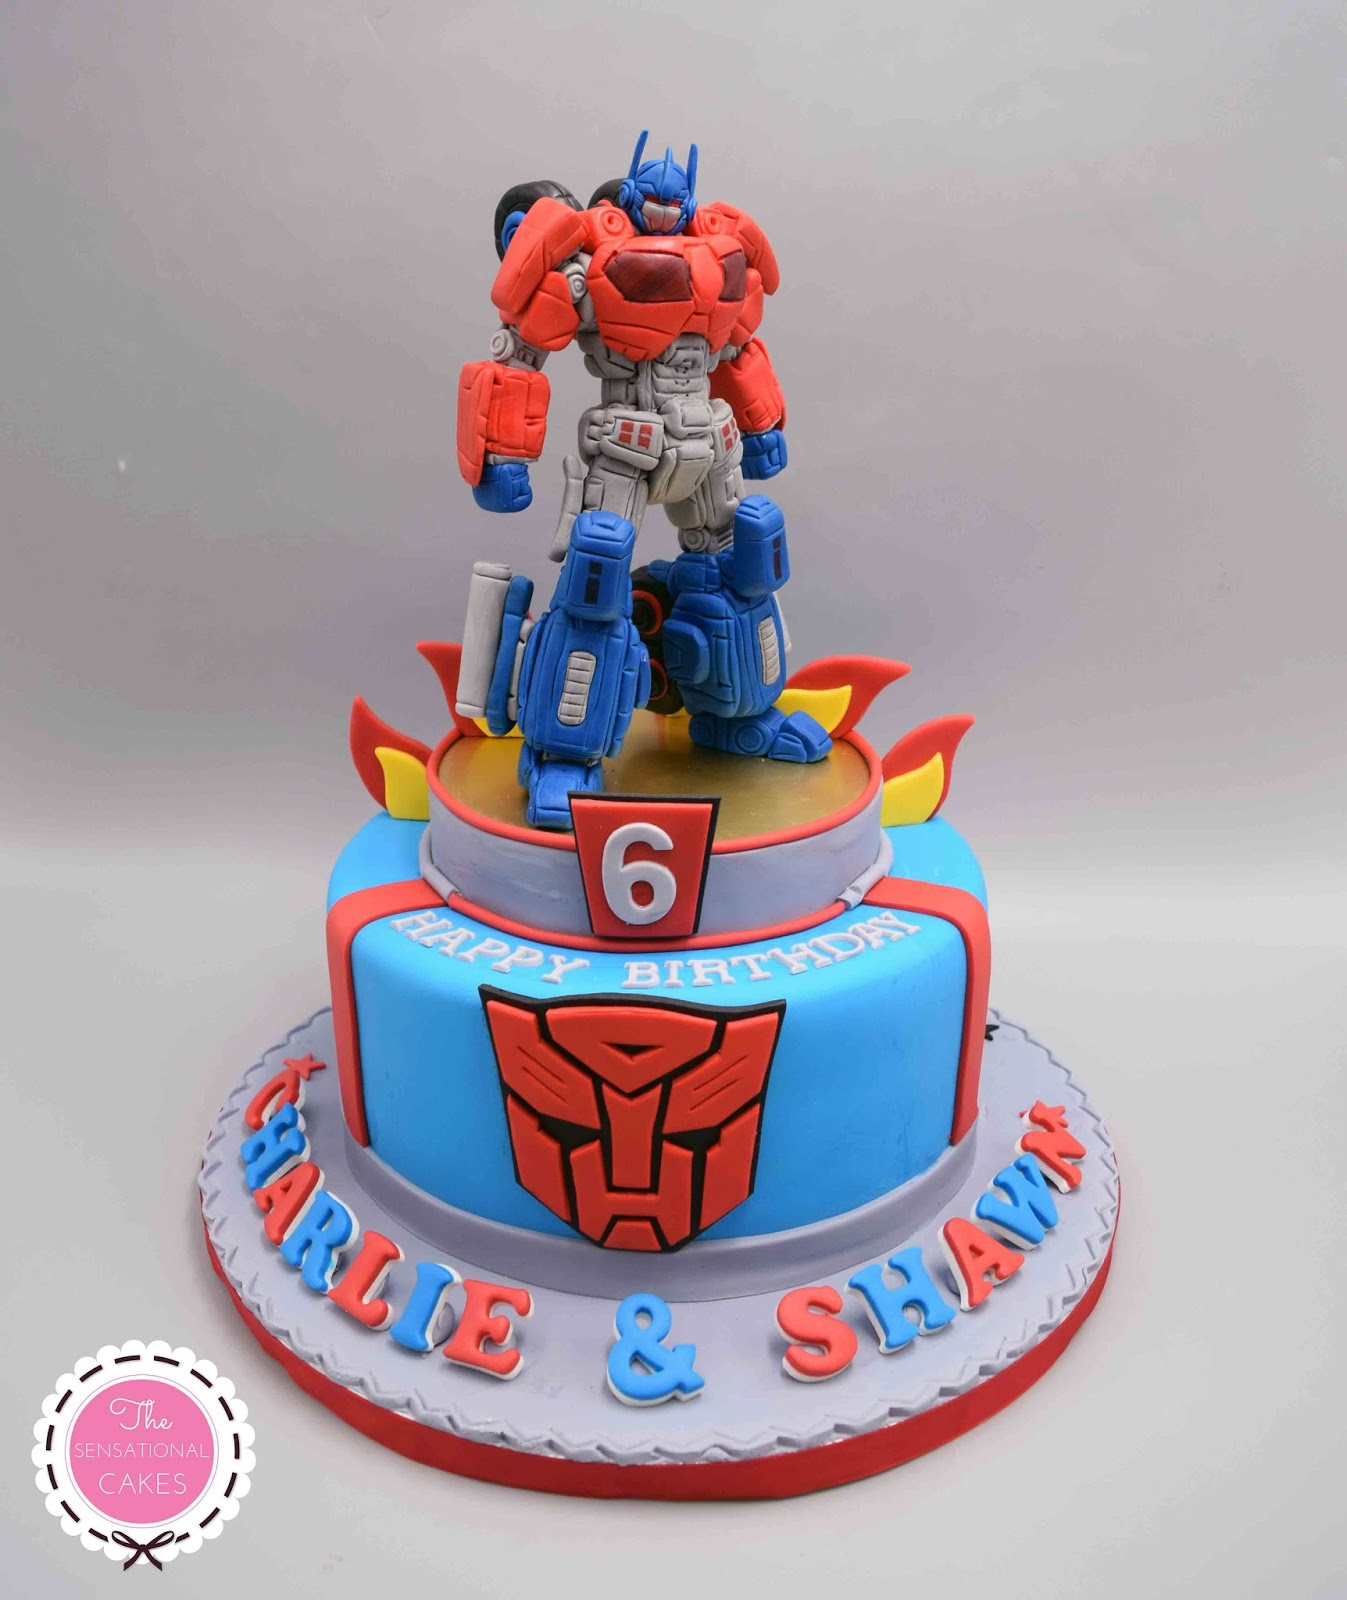 The Sensational Cakes Transformers Theme 3d Birthday Cake